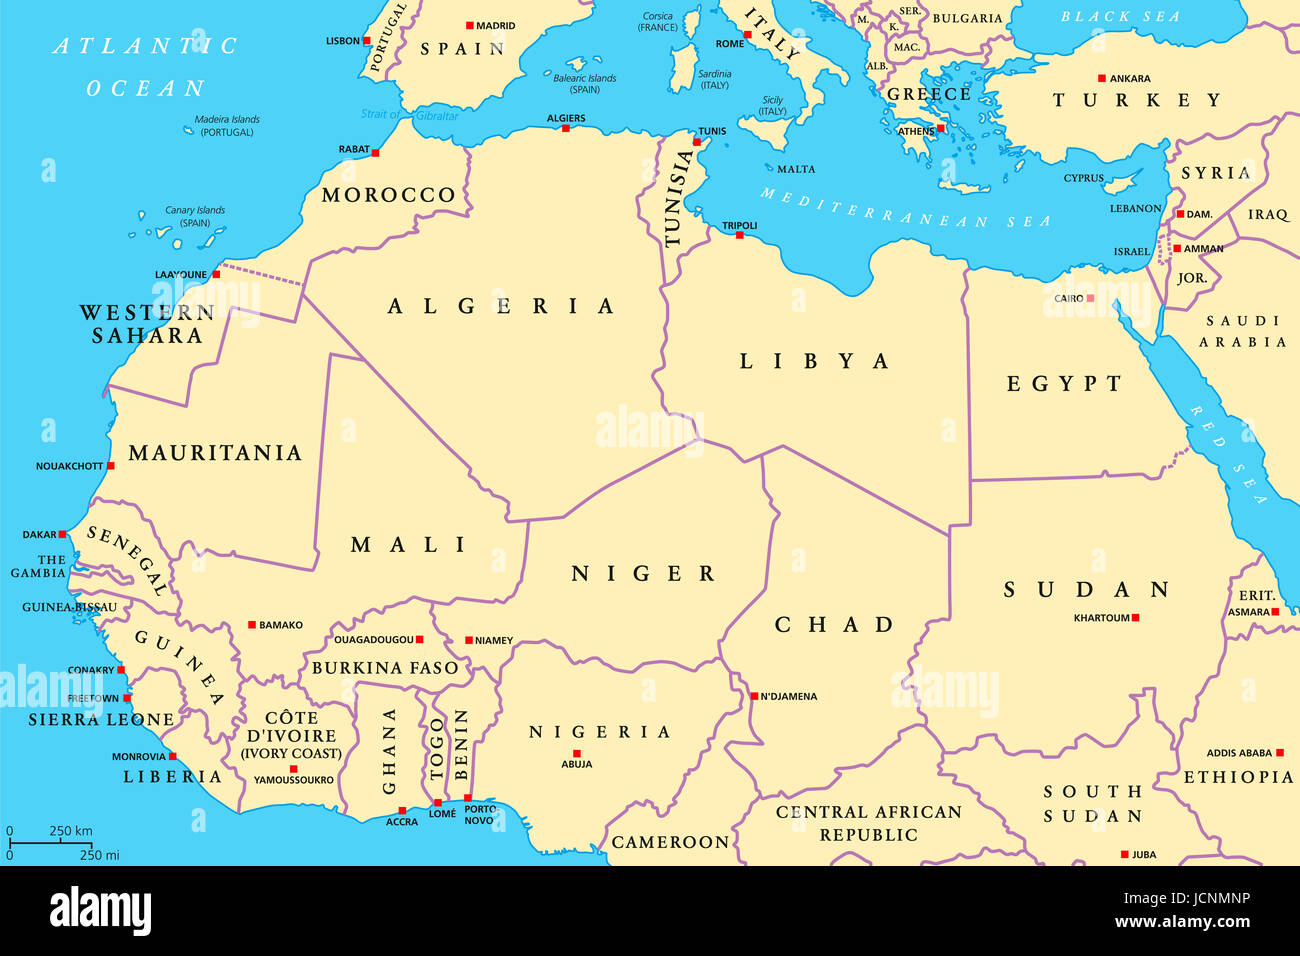 North Africa countries political map with capitals and borders From